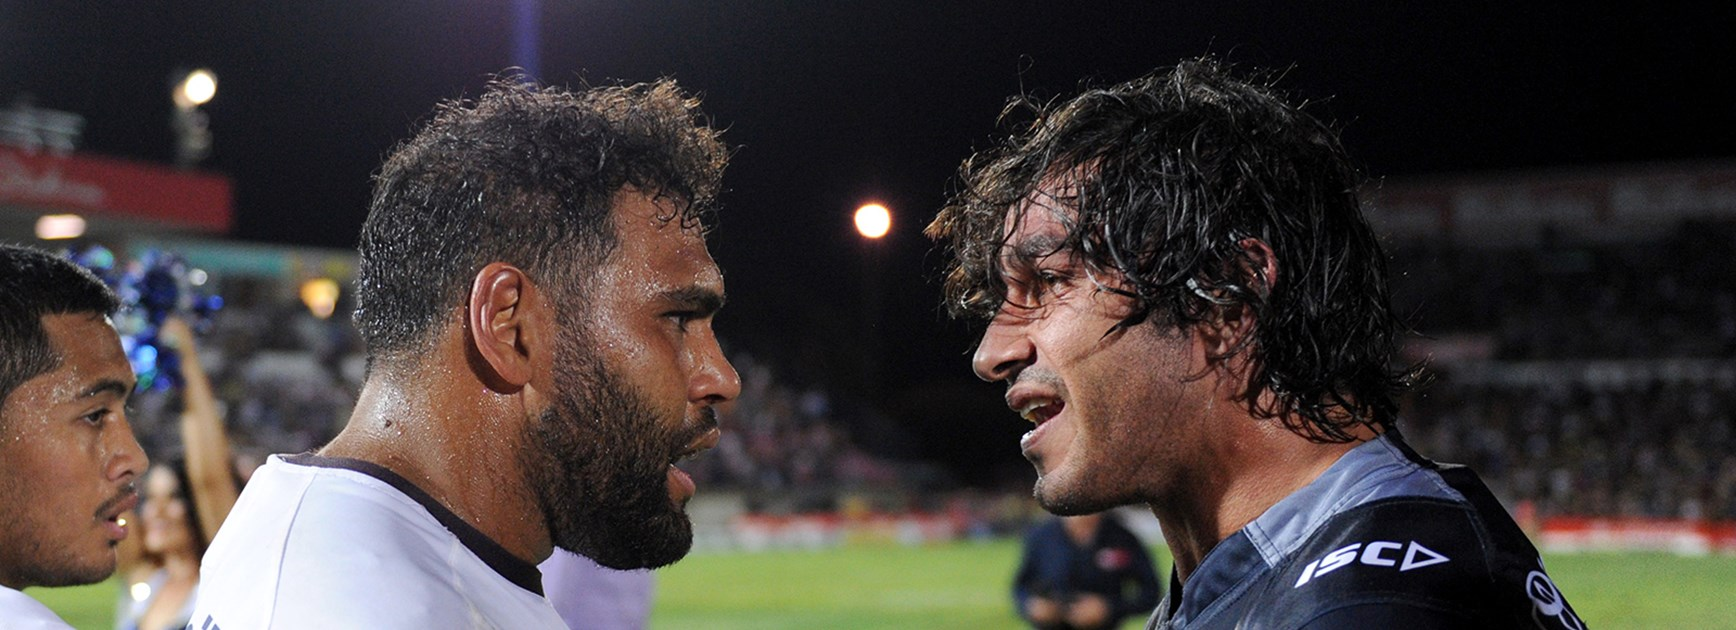 Sam Thaiday and Johnathan Thurston after the Round 11 clash between the Broncos and Cowboys.